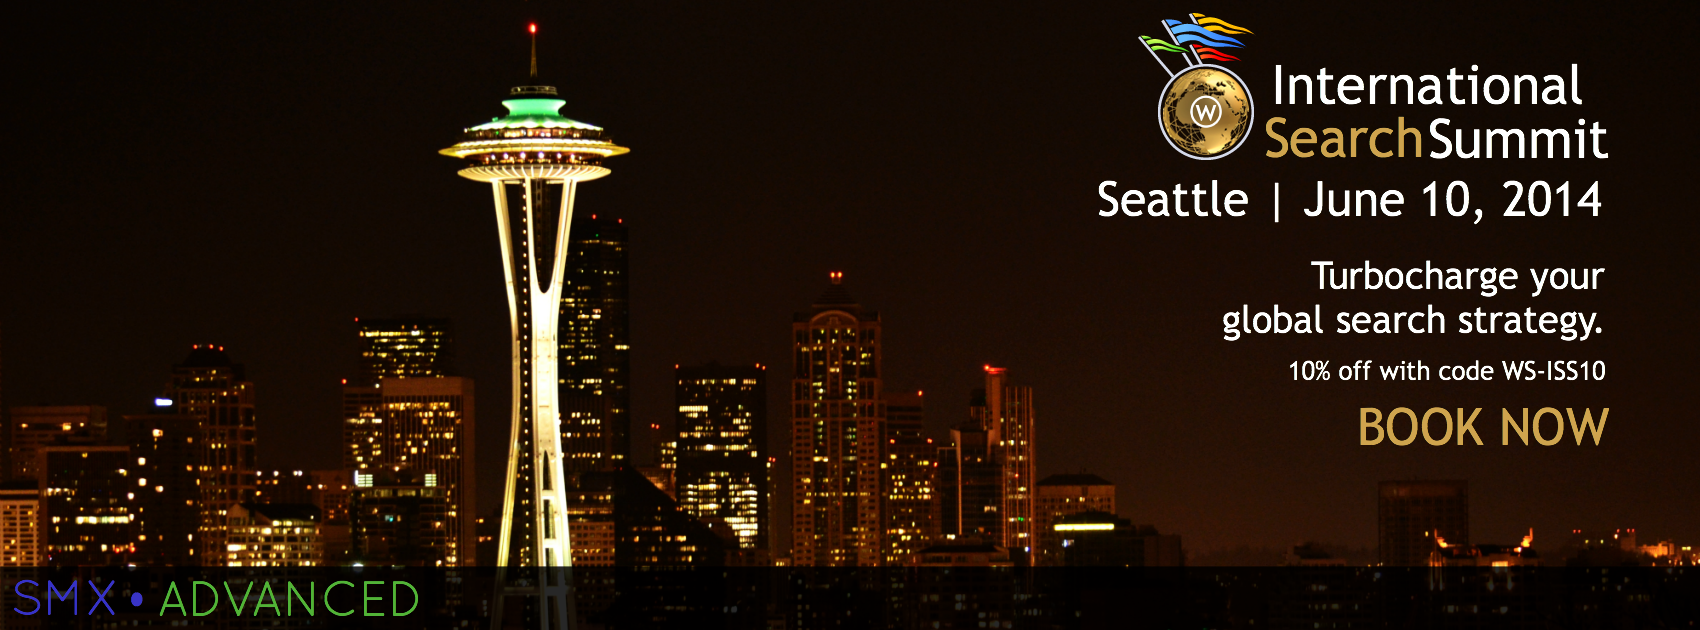 ISS Seattle 2014 Book Now